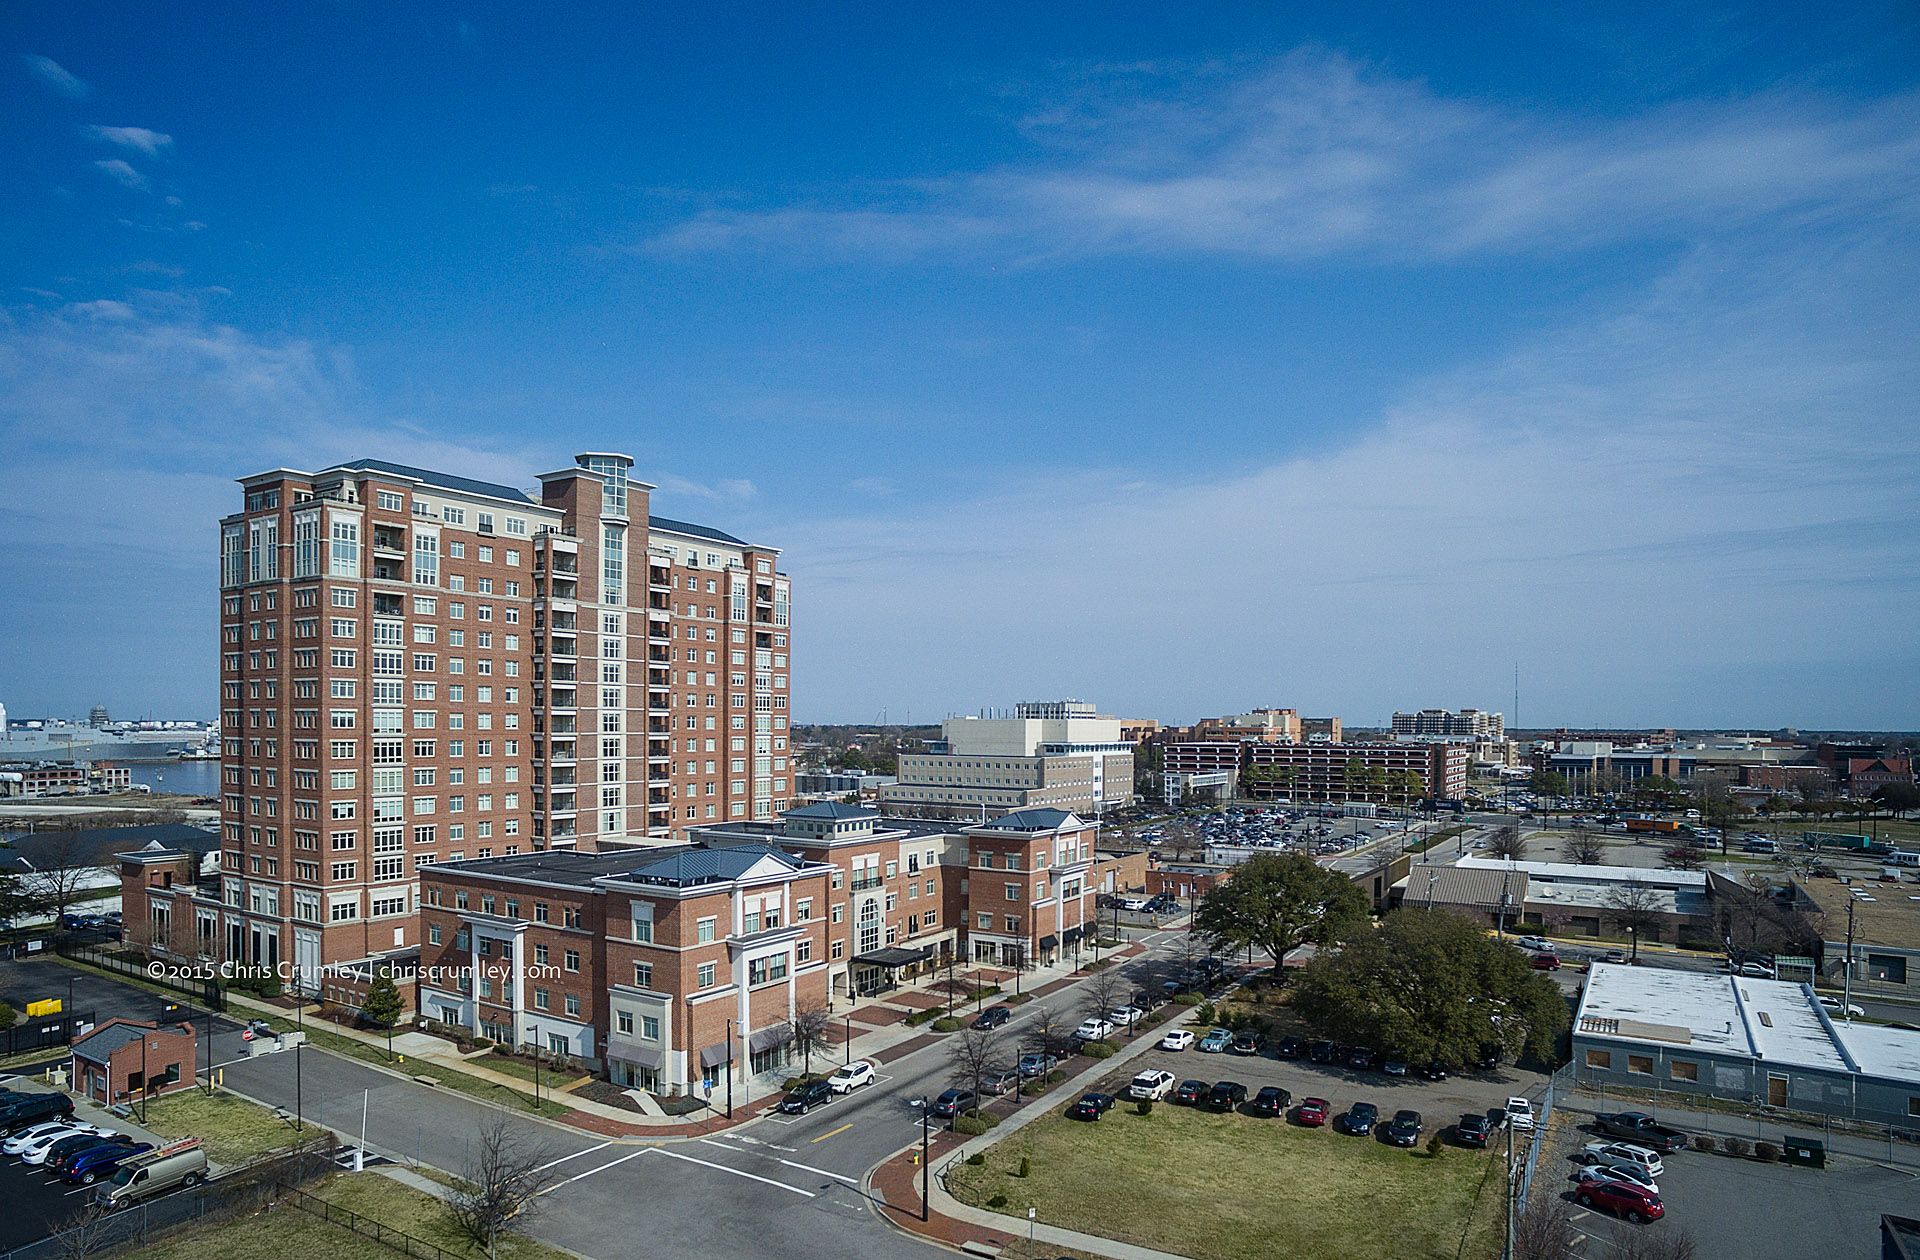 Aerial of Harbor's Edge Retirement Community in Norfolk, VA